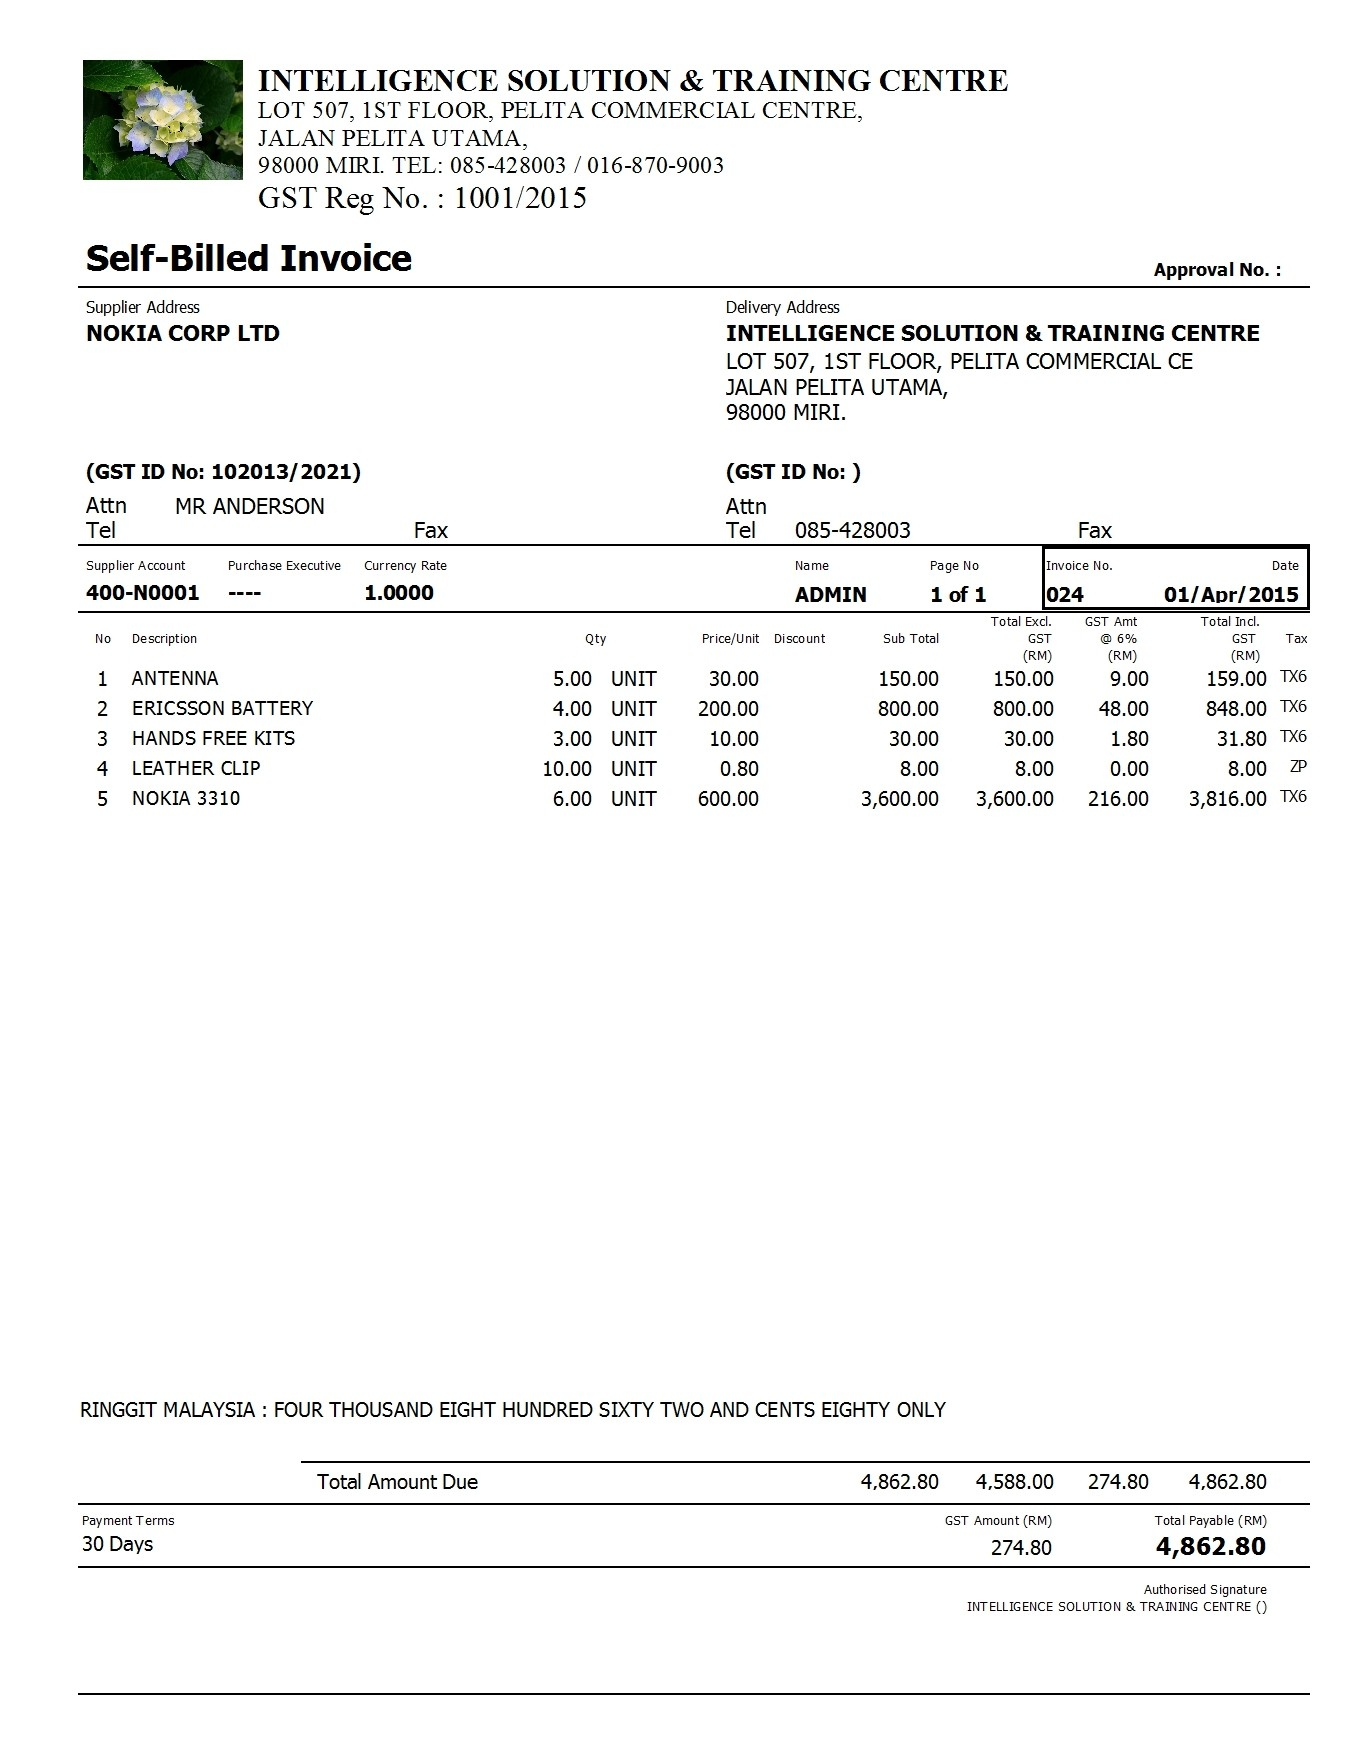 gst istc sample invoice with gst